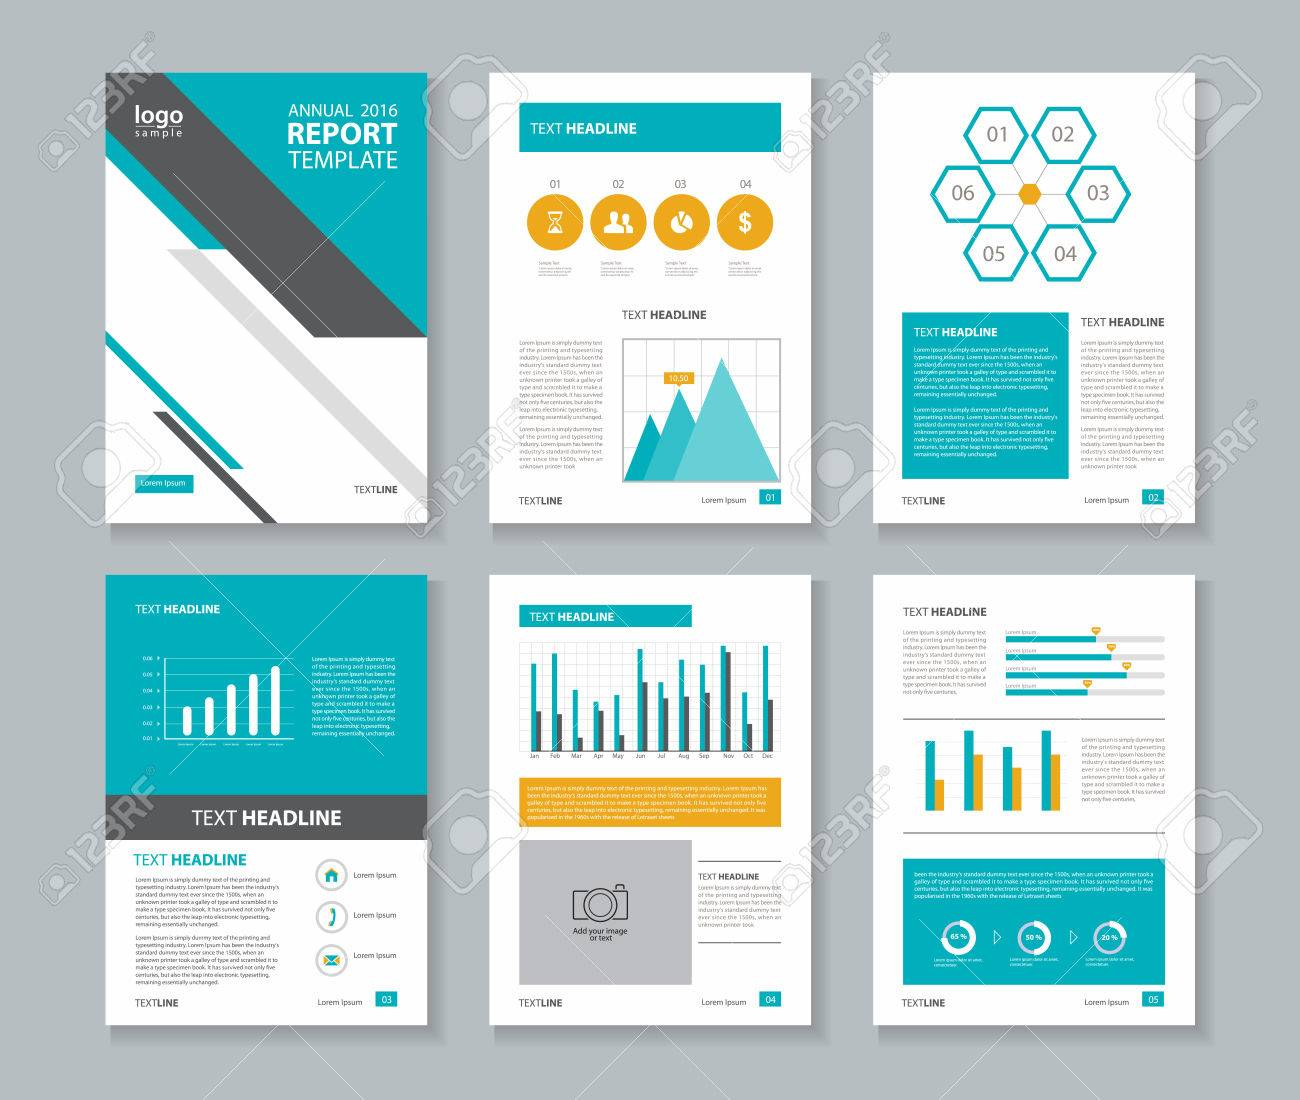 annual report layout template royalty free cliparts vectors and